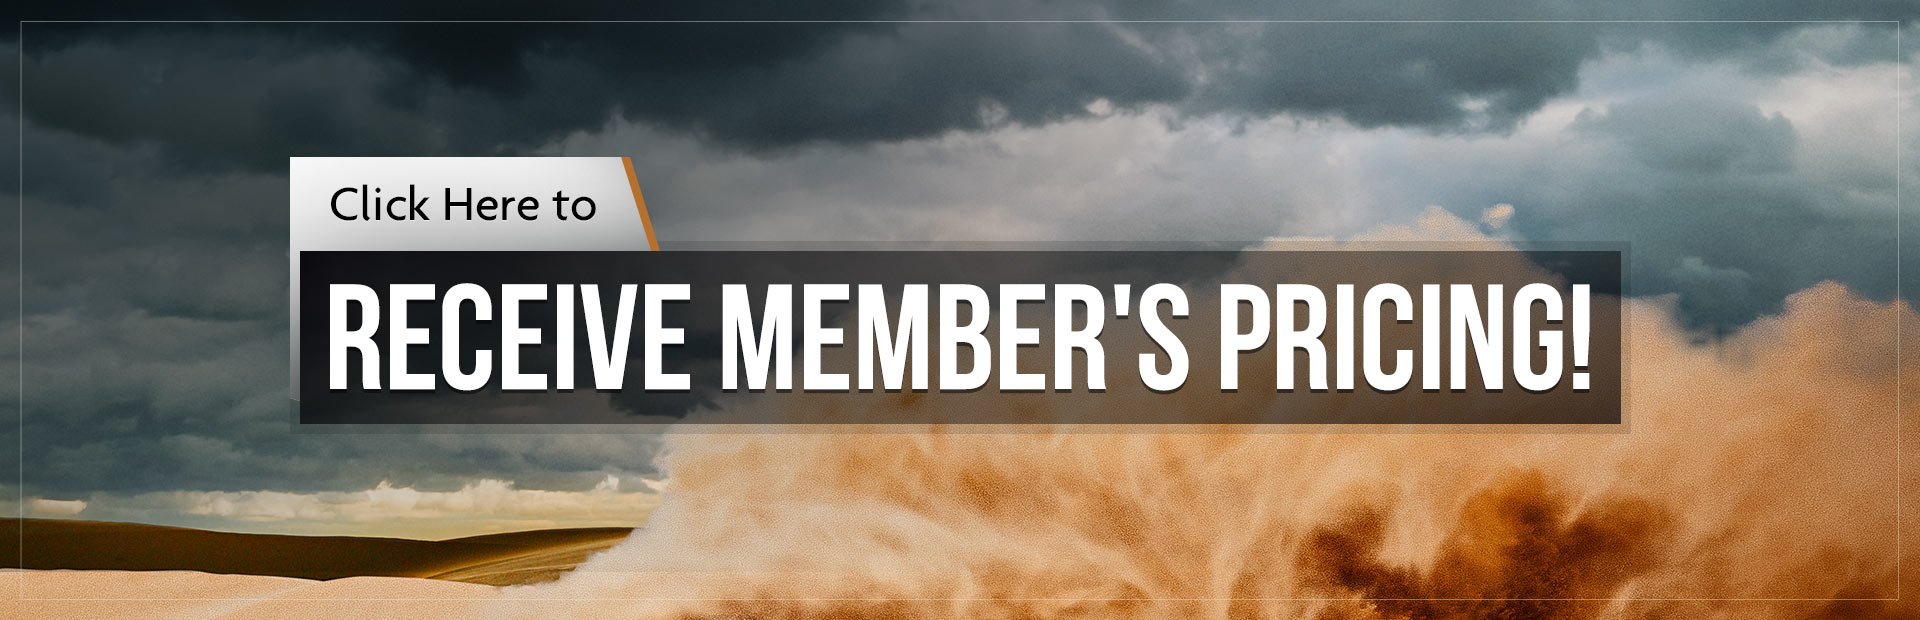 Click here to receive member's pricing!